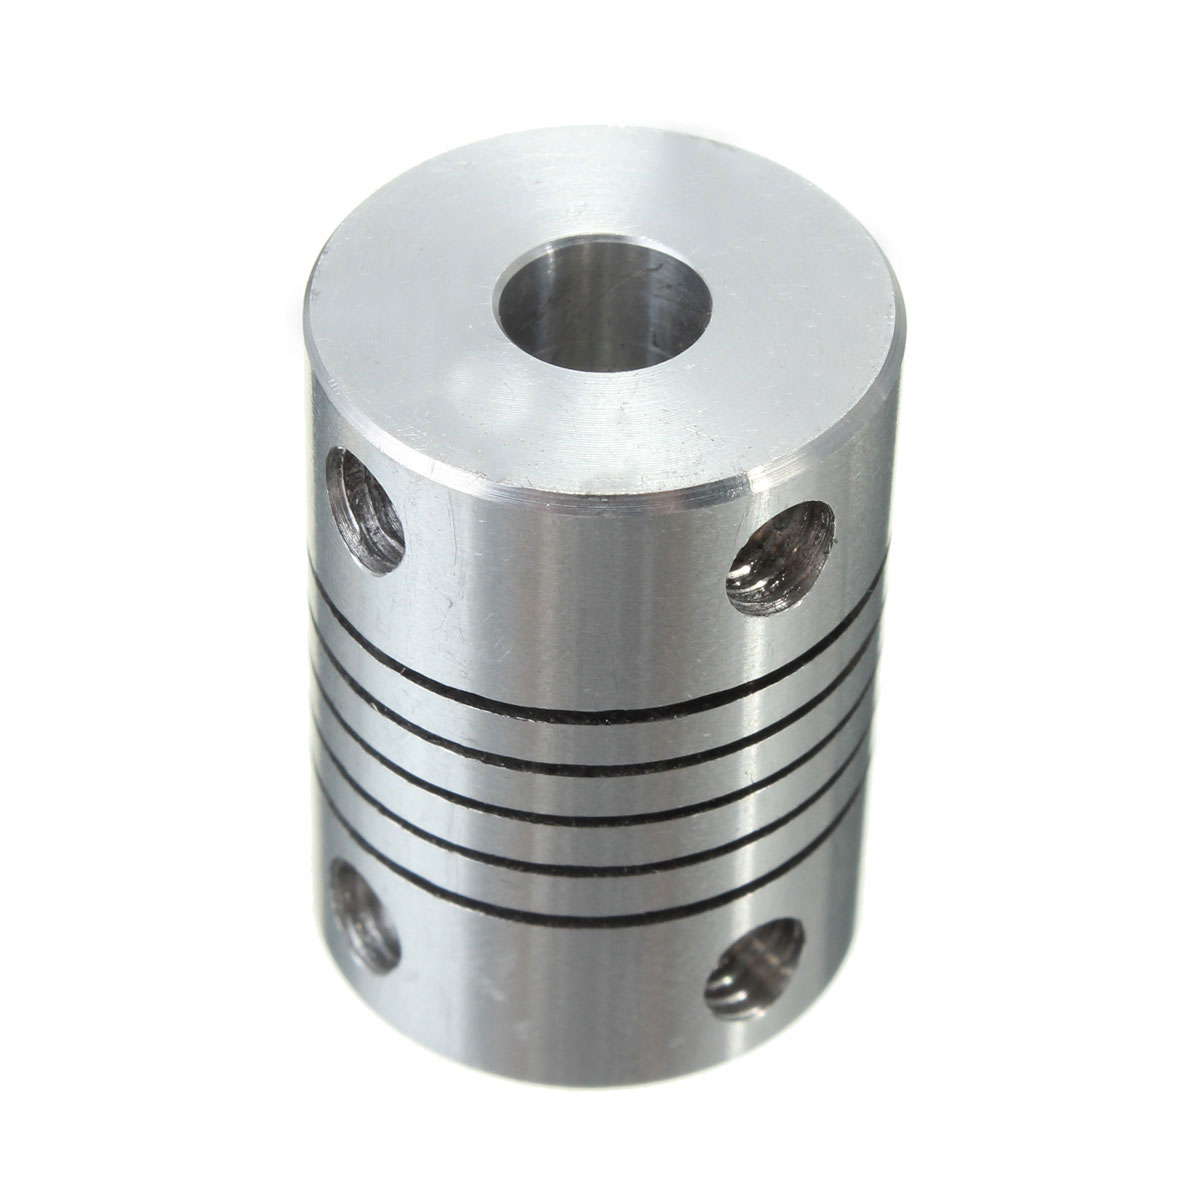 10 size flexible clamp jaw shaft coupling cnc stepper for Stepper motor shaft coupling coupler